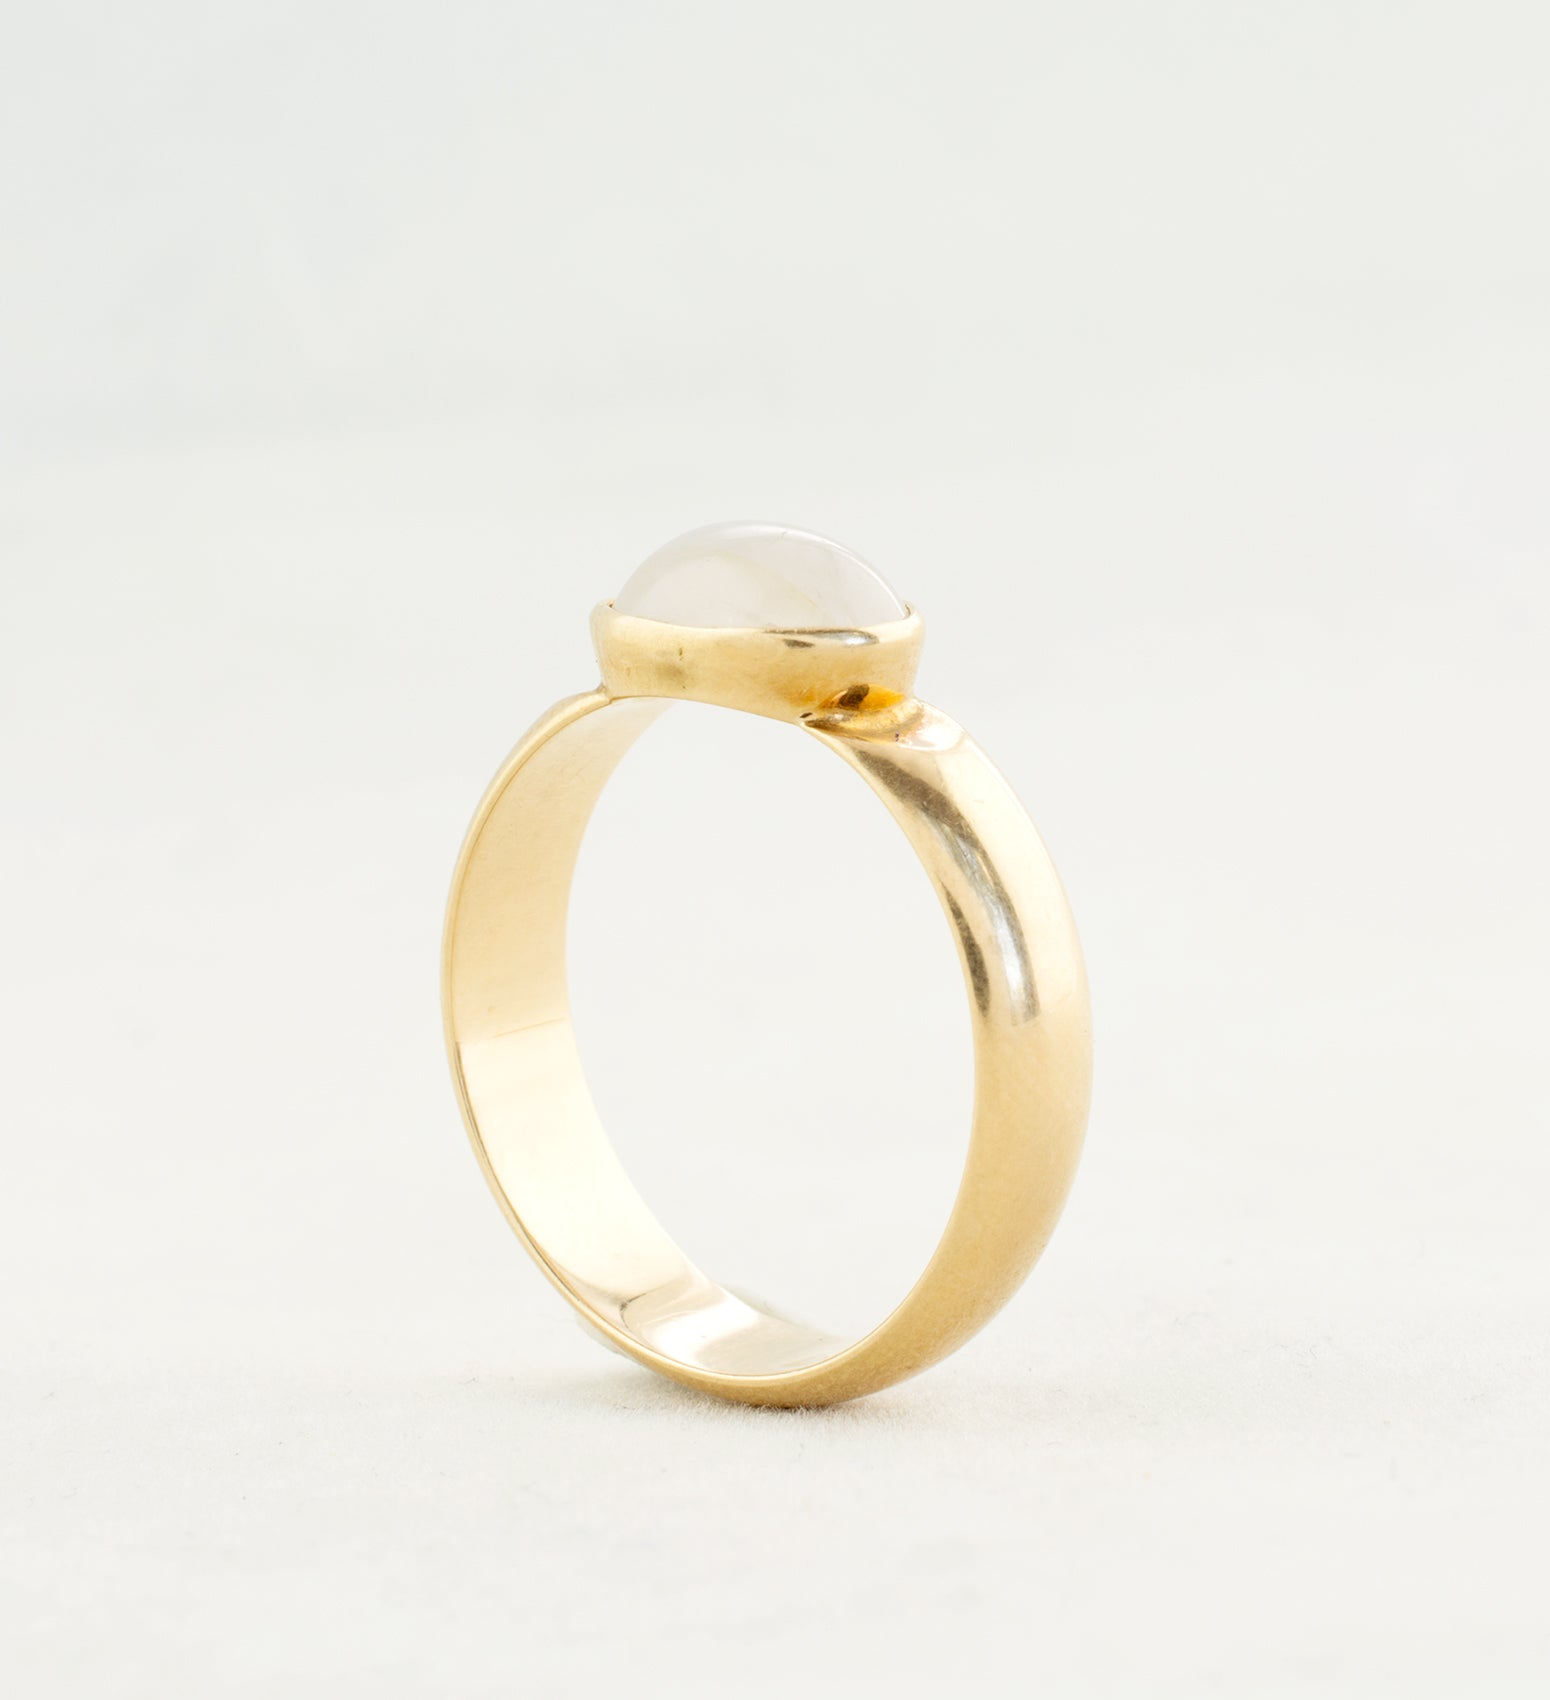 1970s 14k Gold + Rose Quartz by Nil Westerback Ring - Sold - Hopea